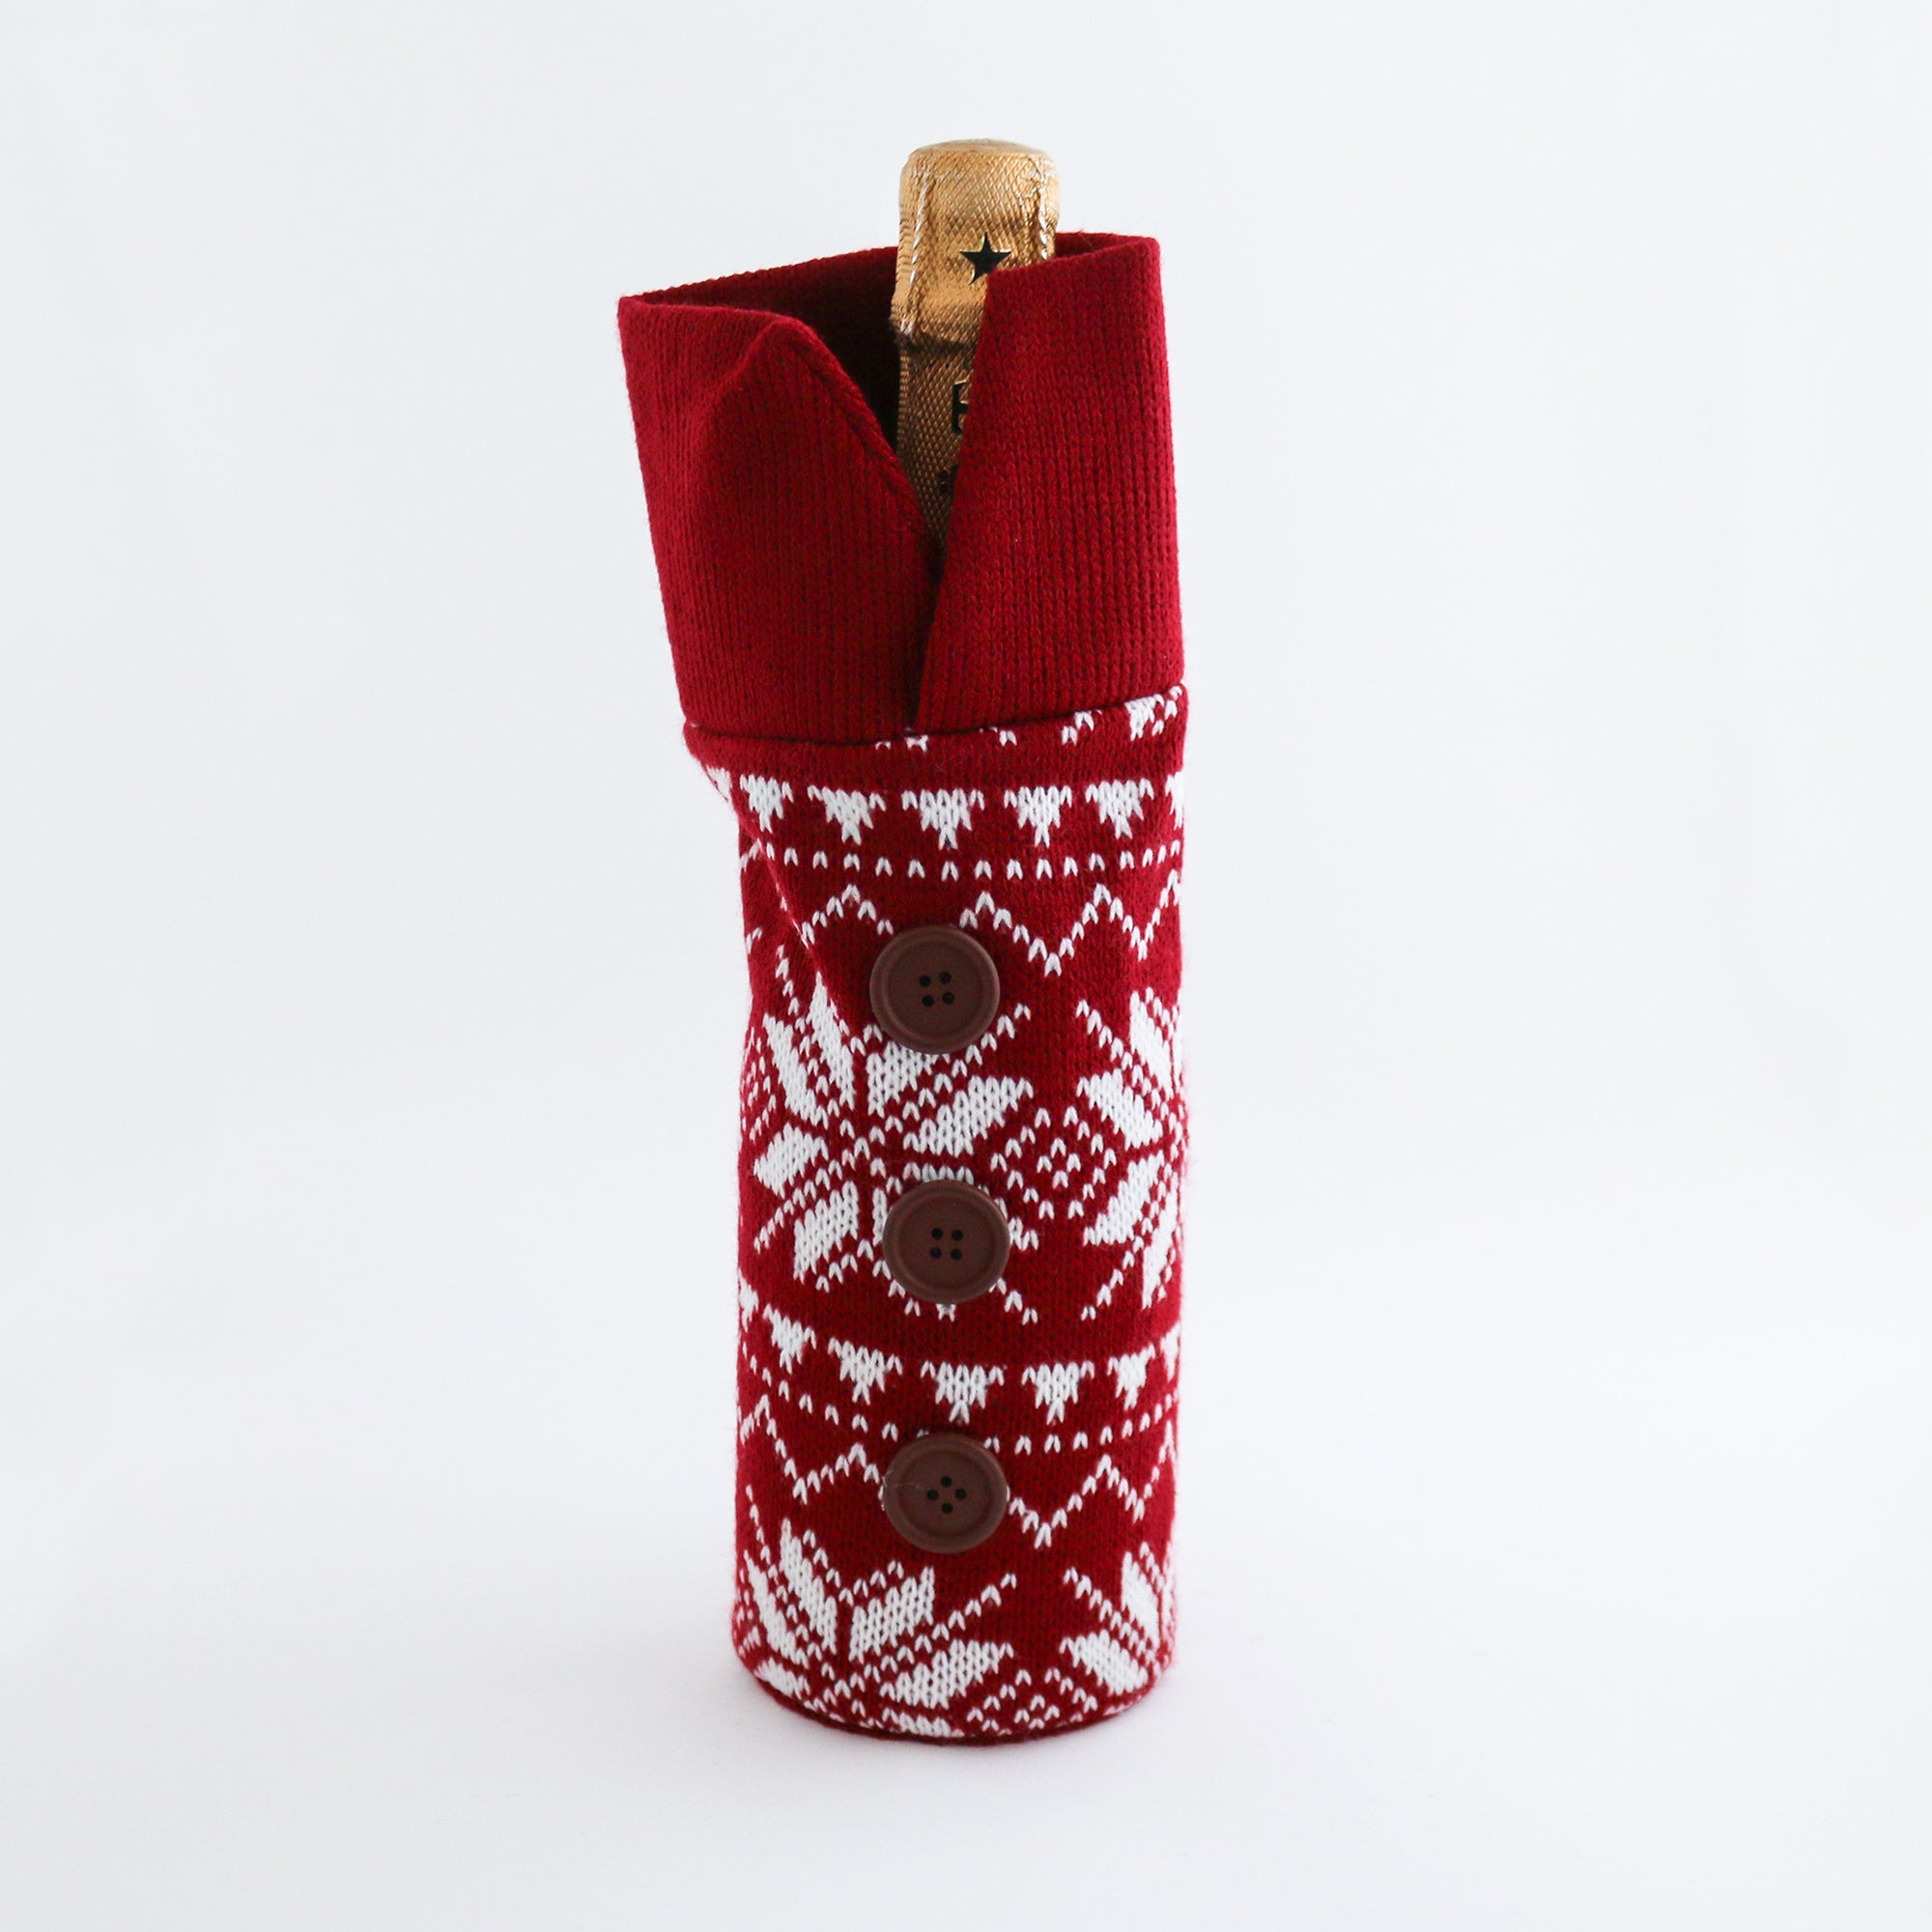 Full Wine Bottle Knit Holiday Sweater - The VinePair Store